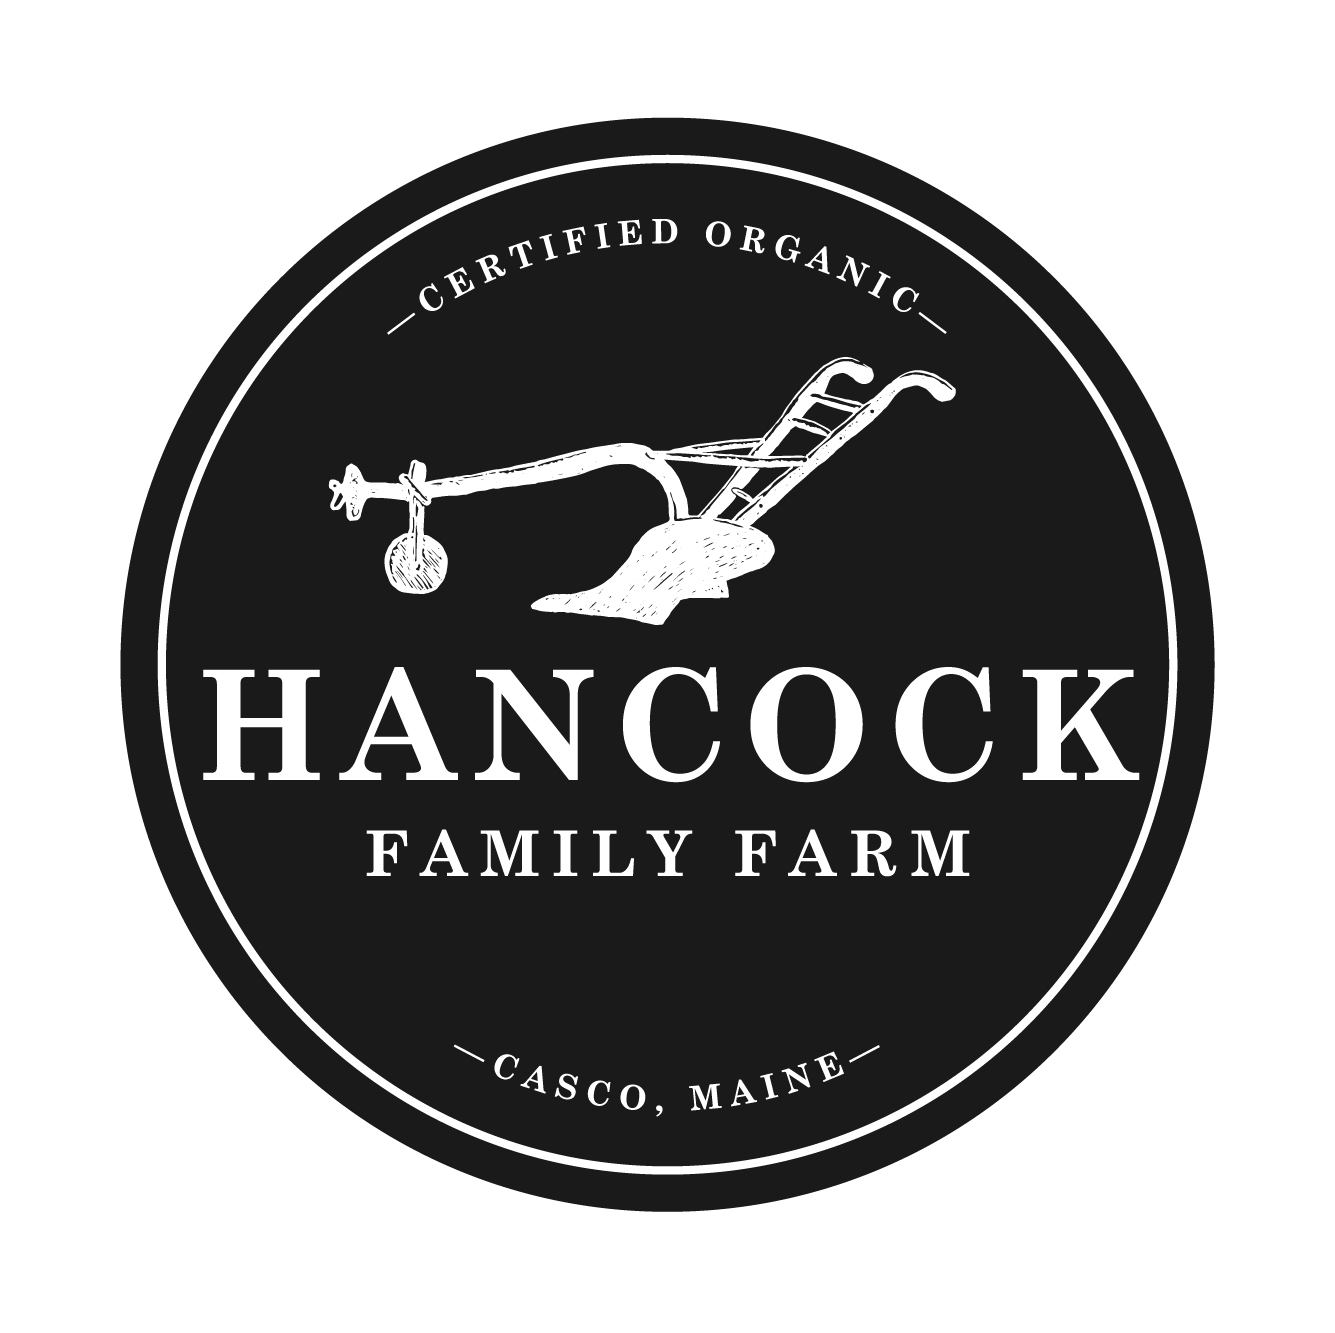 Hancock Family Farm